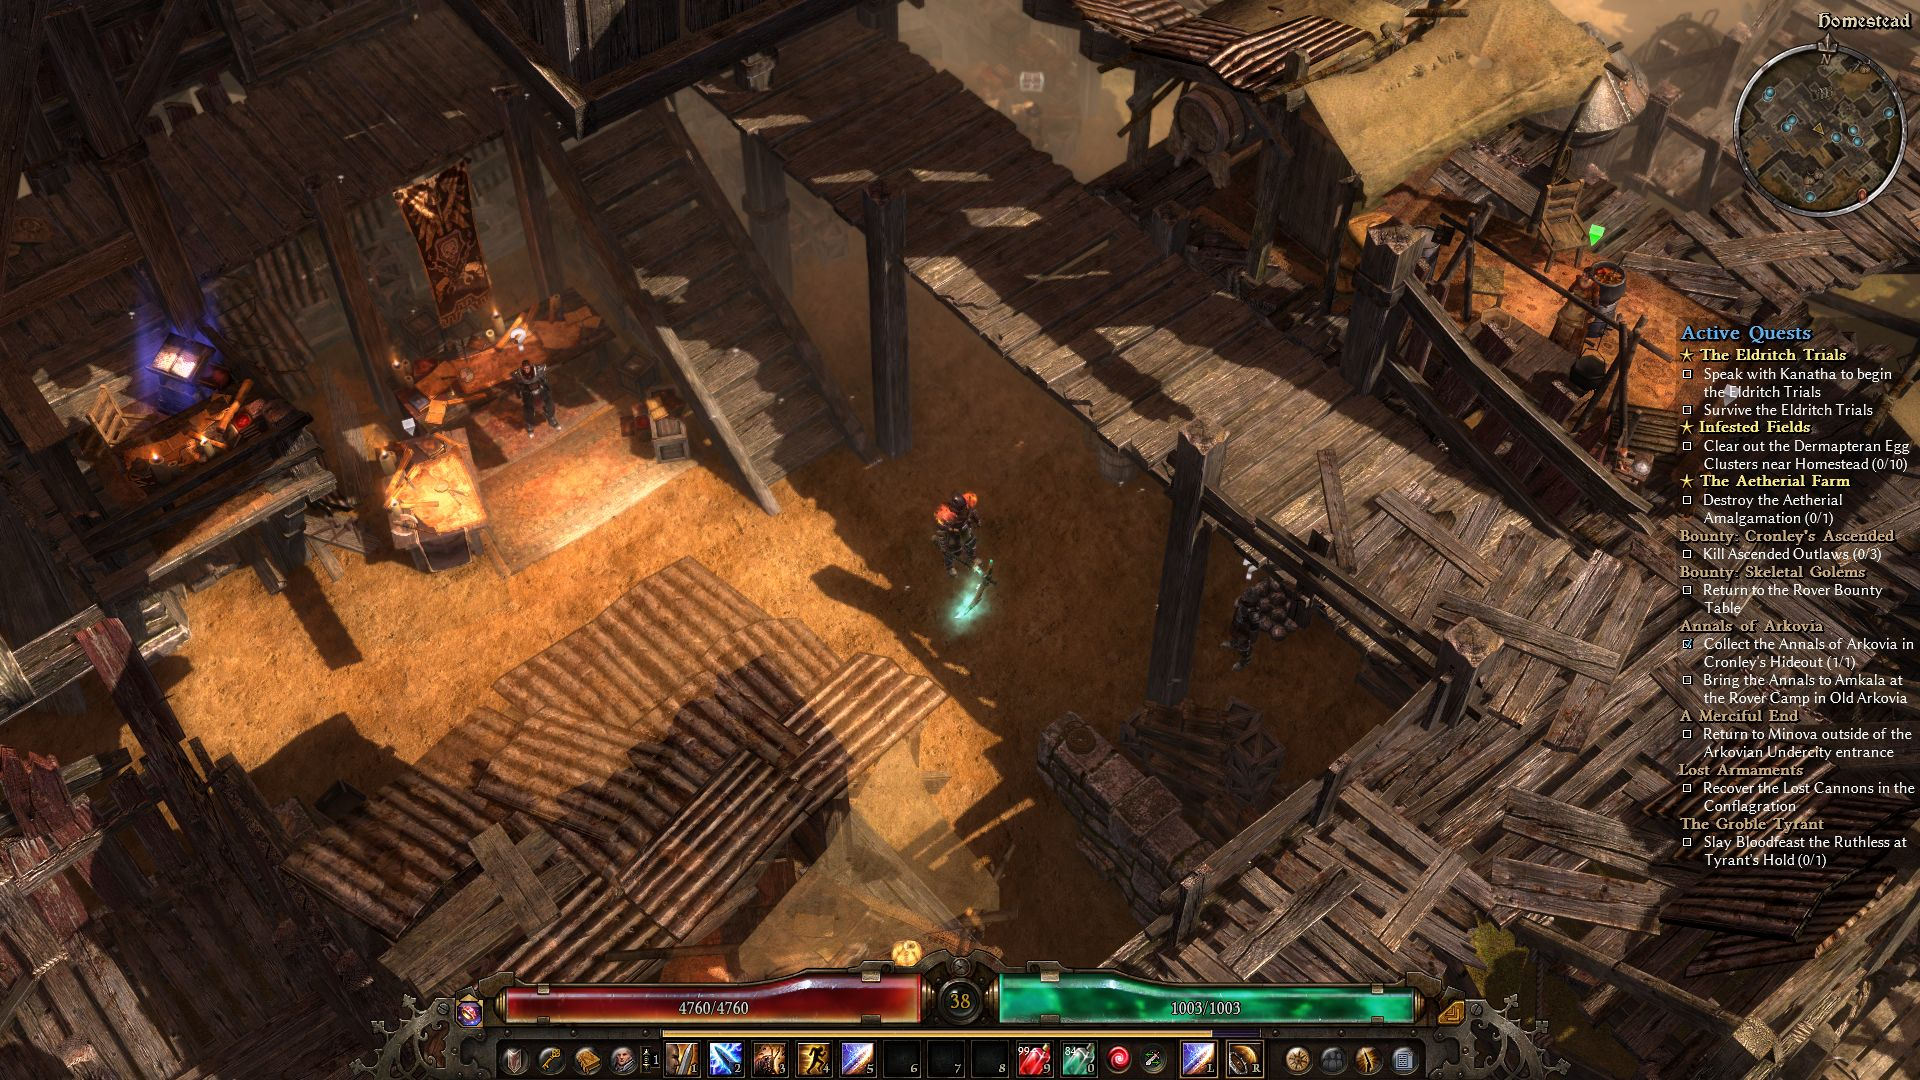 grim-dawn-screenshot-2019-04-15-06-25-23-41